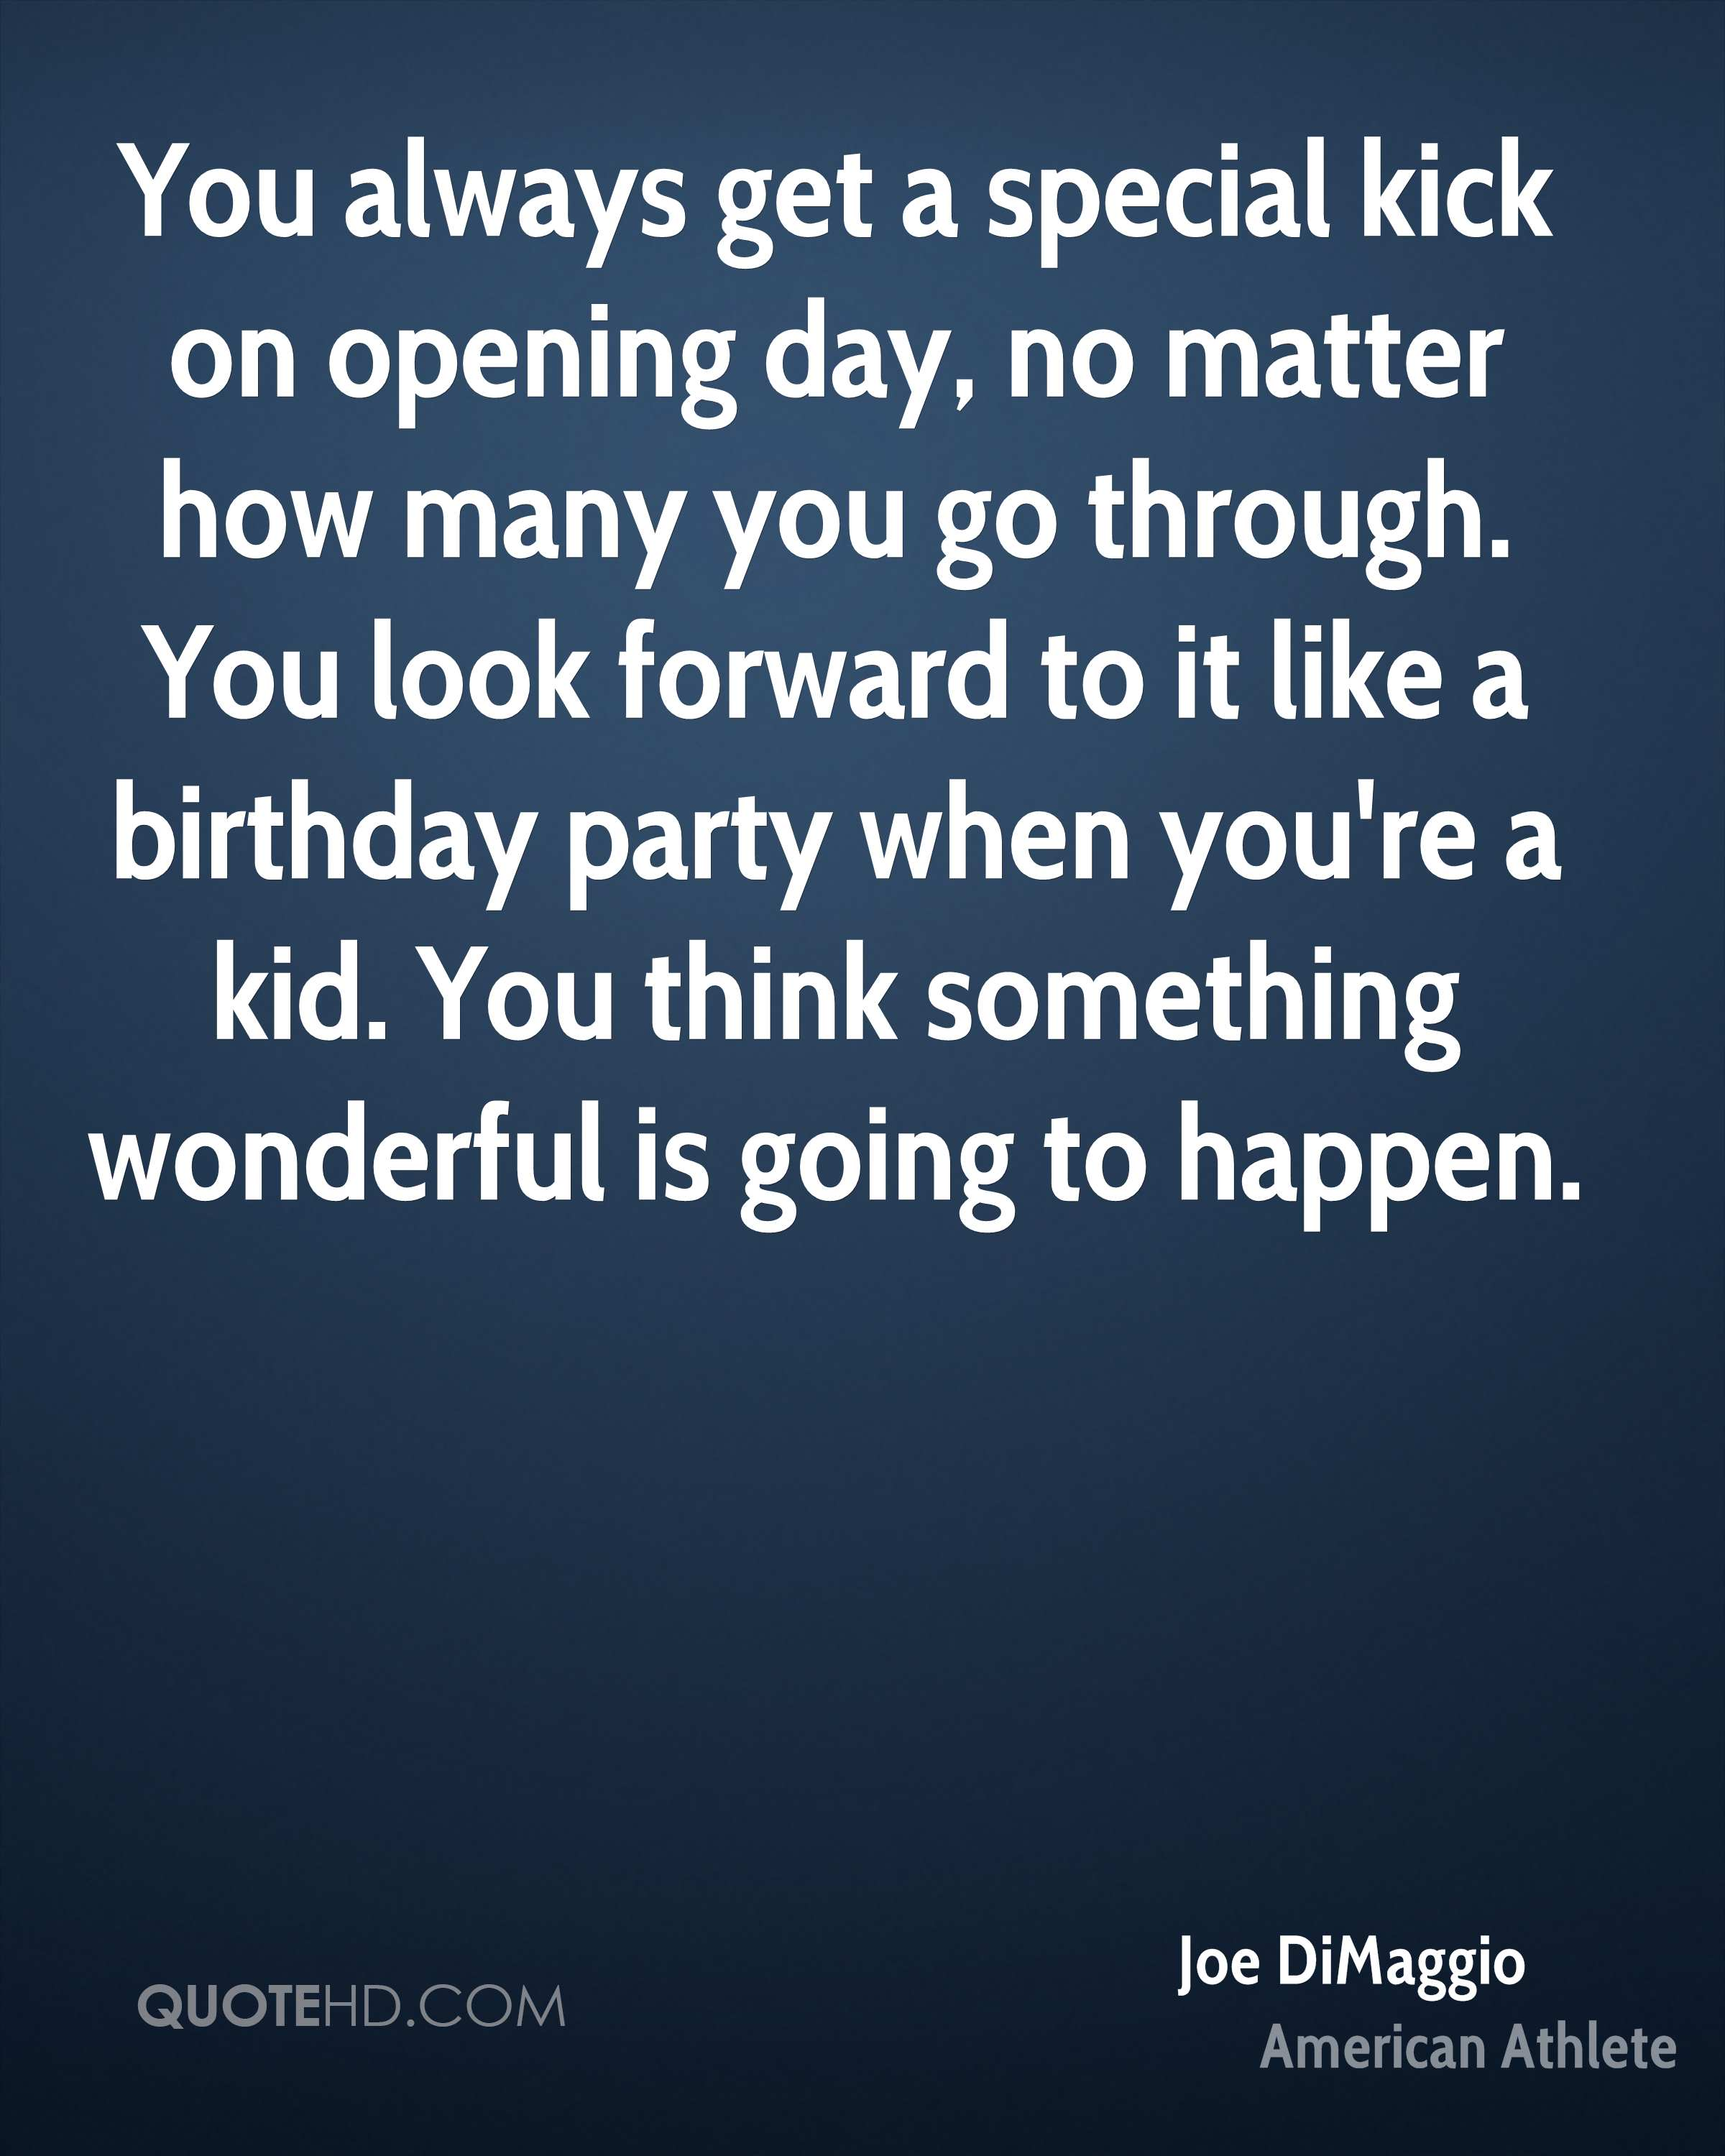 You always get a special kick on opening day, no matter how many you go through. You look forward to it like a birthday party when you're a kid. You think something wonderful is going to happen.